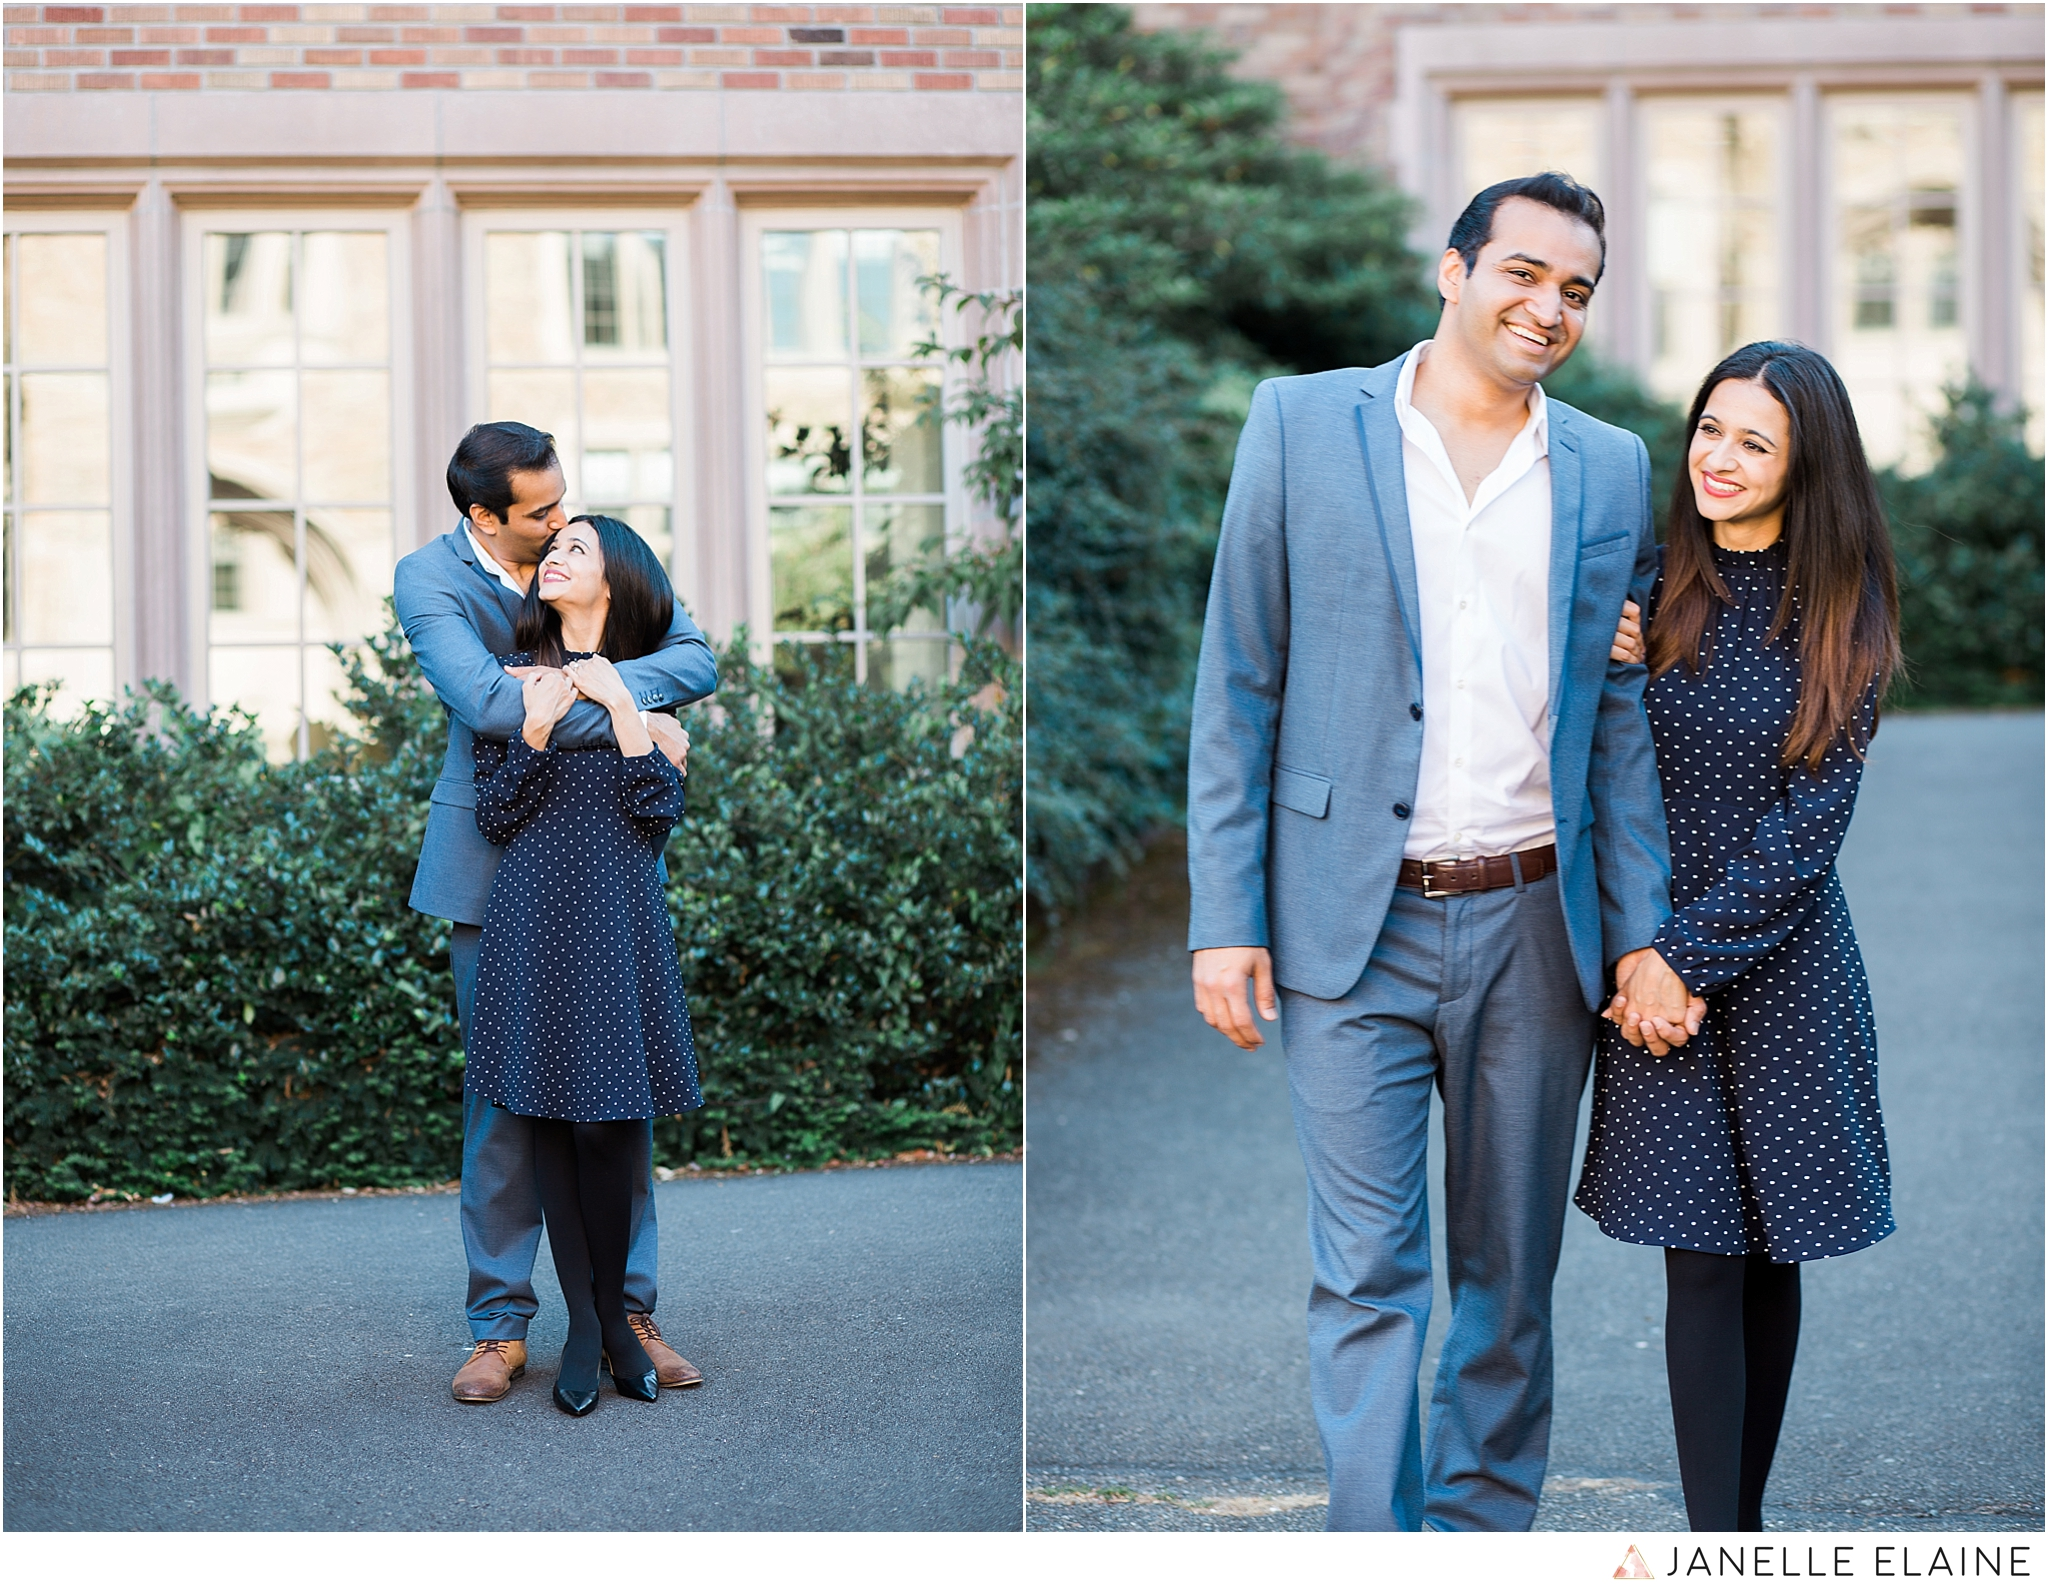 janelle elaine photography-zain and umema-seattle-uw-red square-engagement-photographer-125.jpg